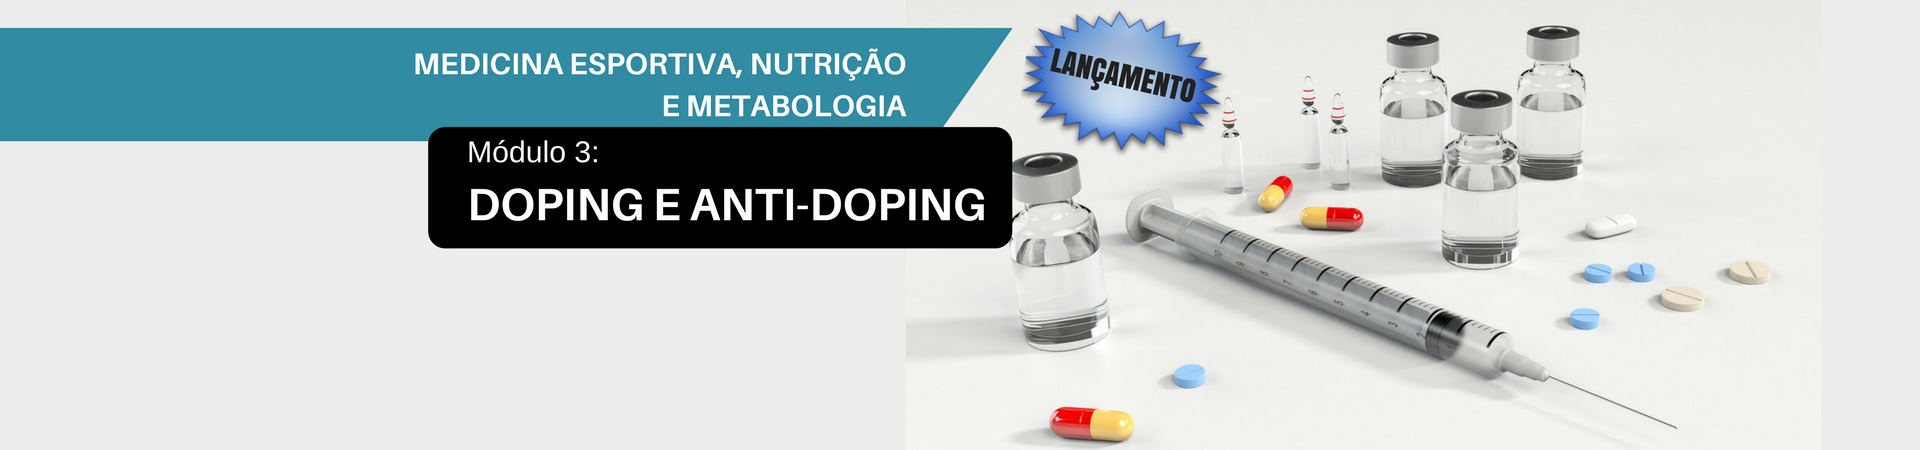 banner-doping